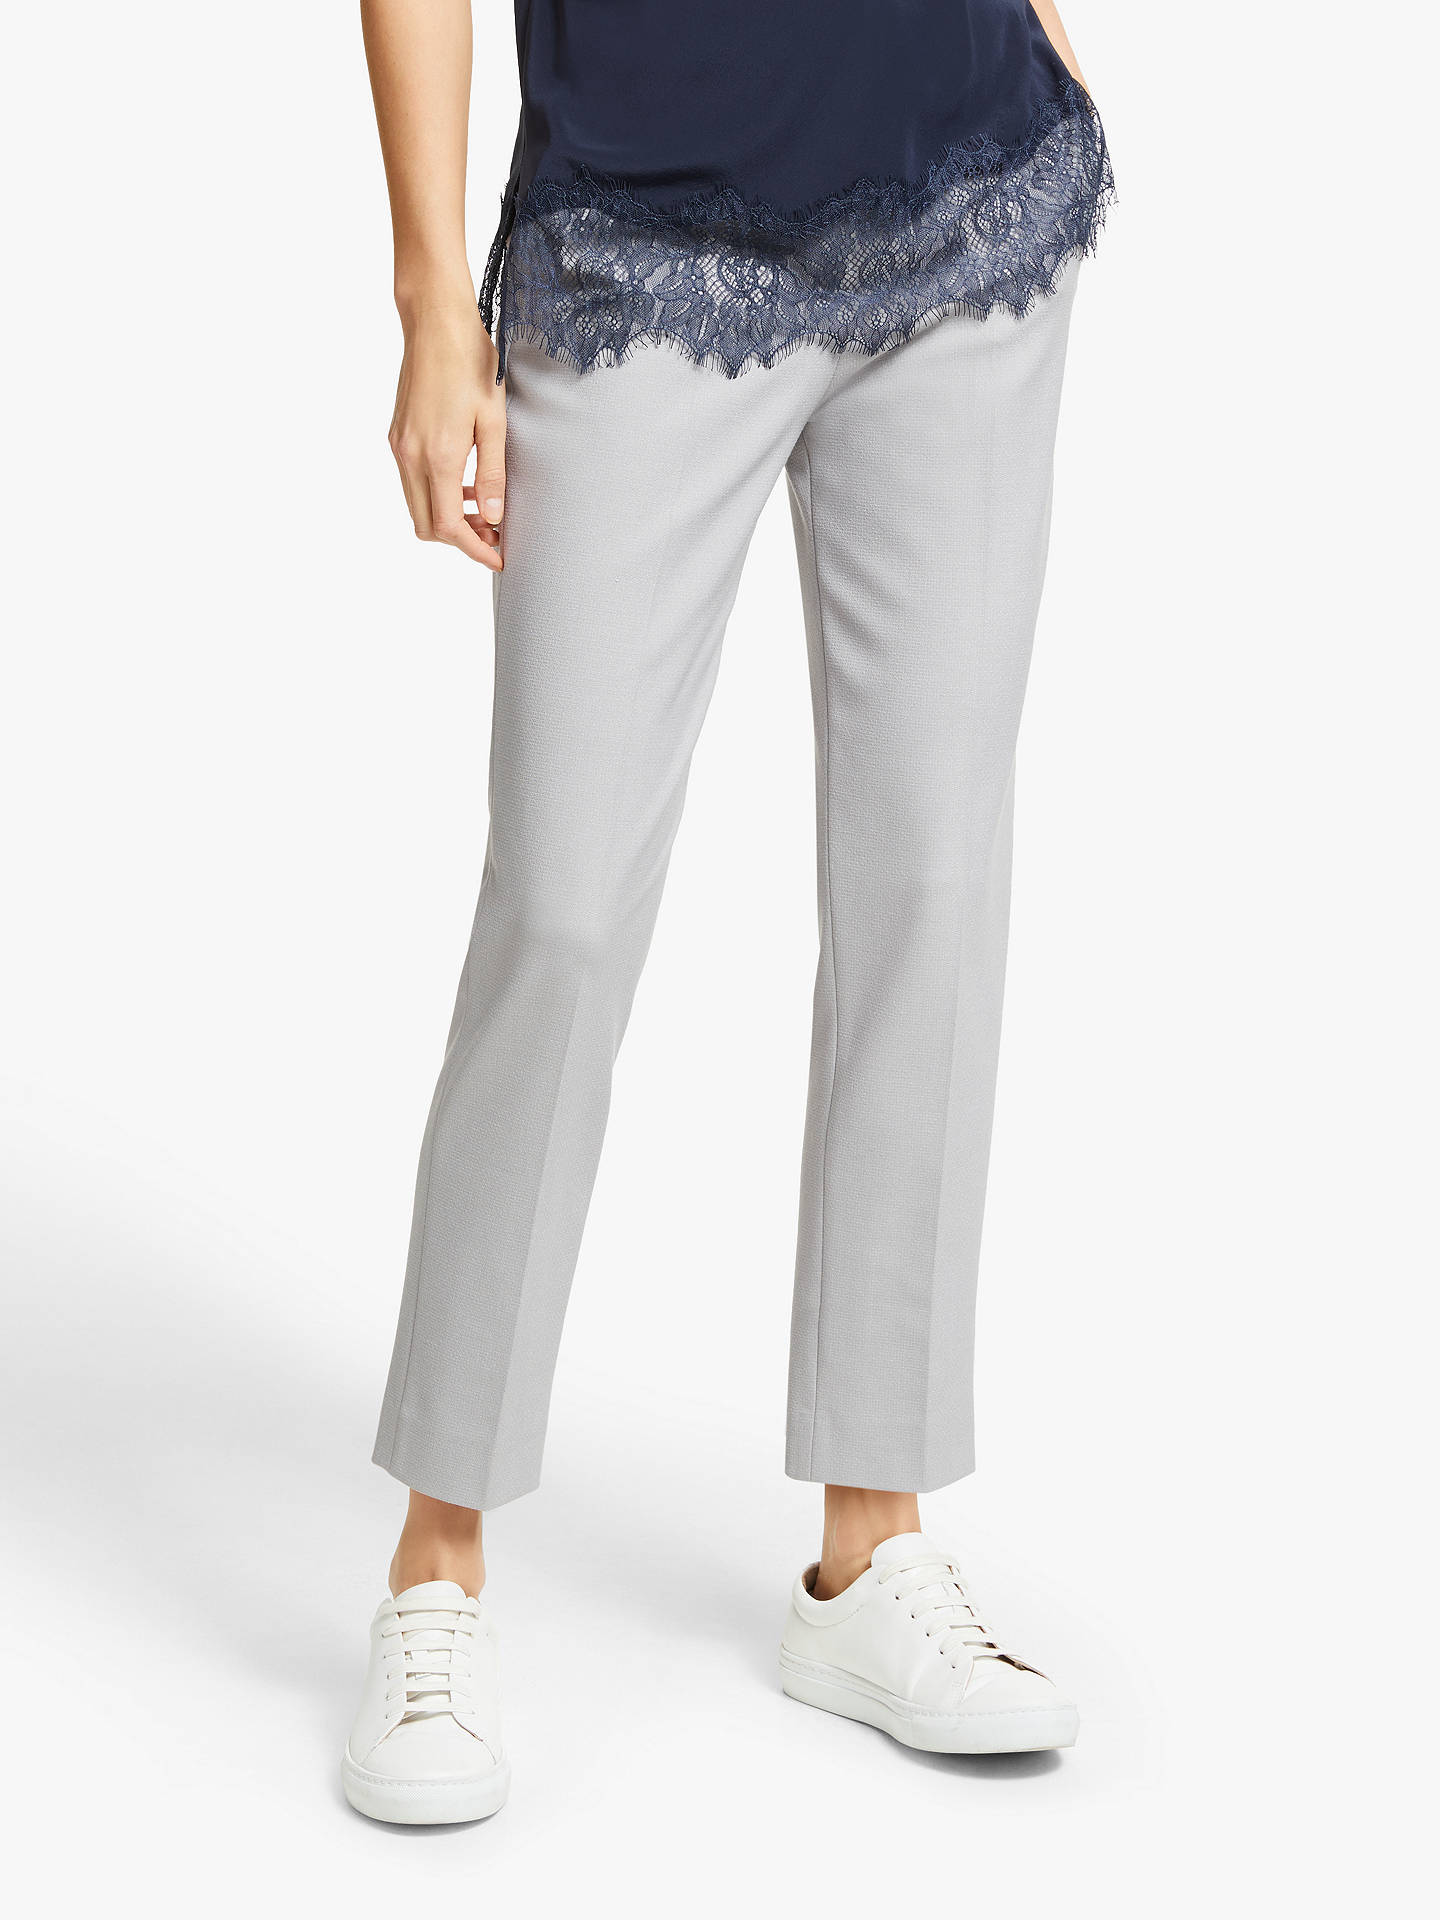 BuyModern Rarity Slim Leg Trousers, Grey, 8 Online at johnlewis.com